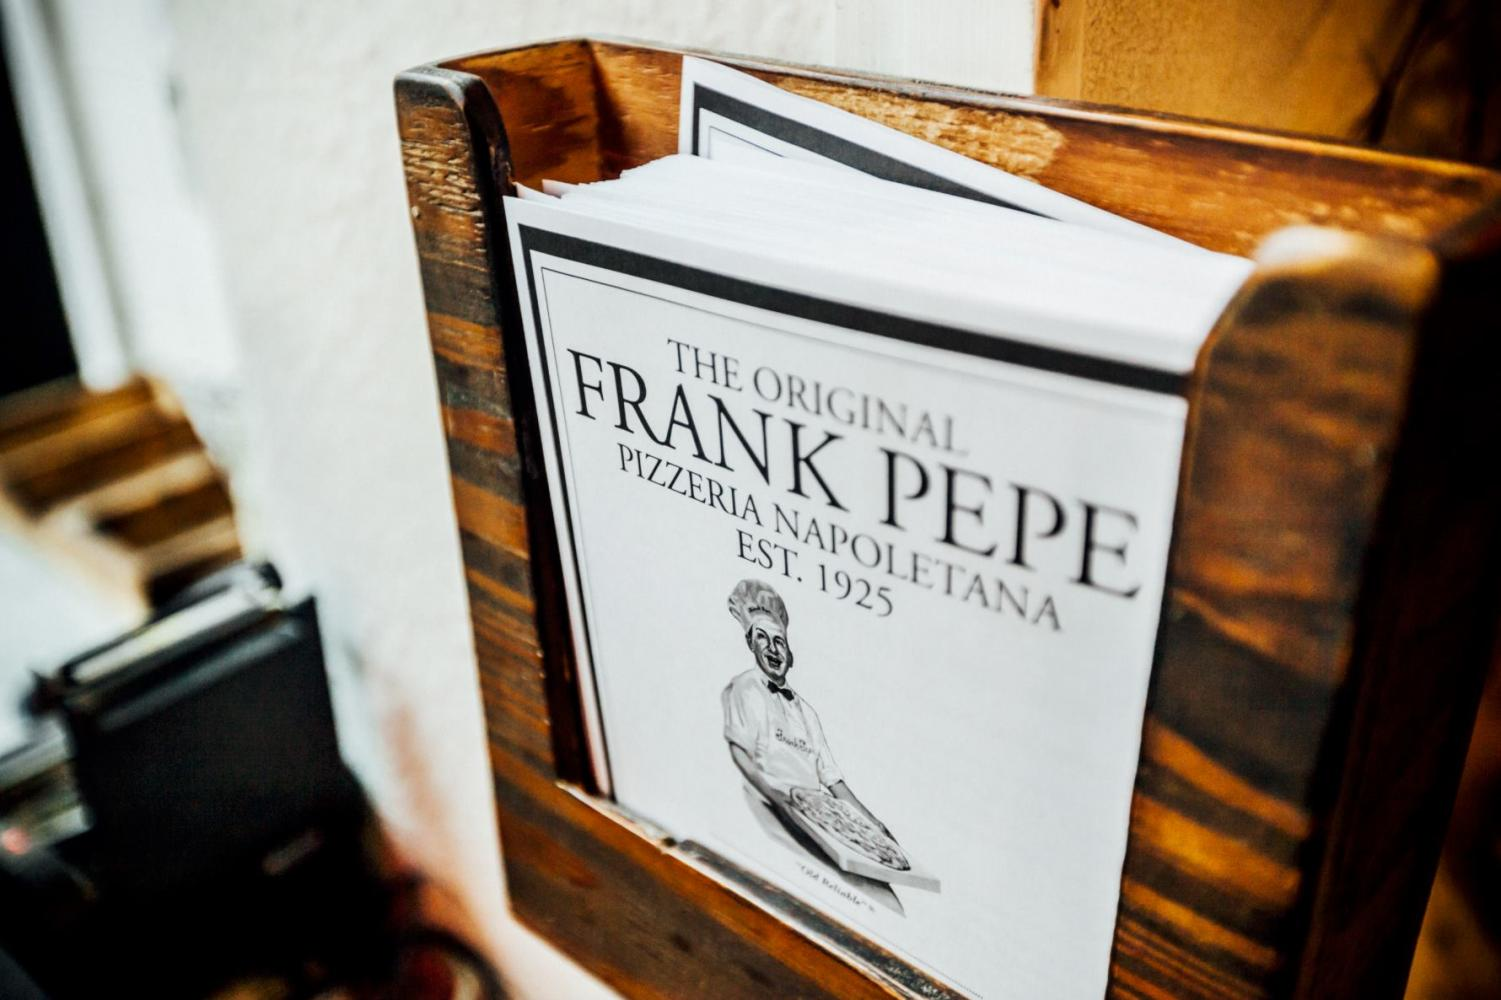 World-Famous Pizzeria Frank Pepe's co-owner is found o be Pro-Trump.